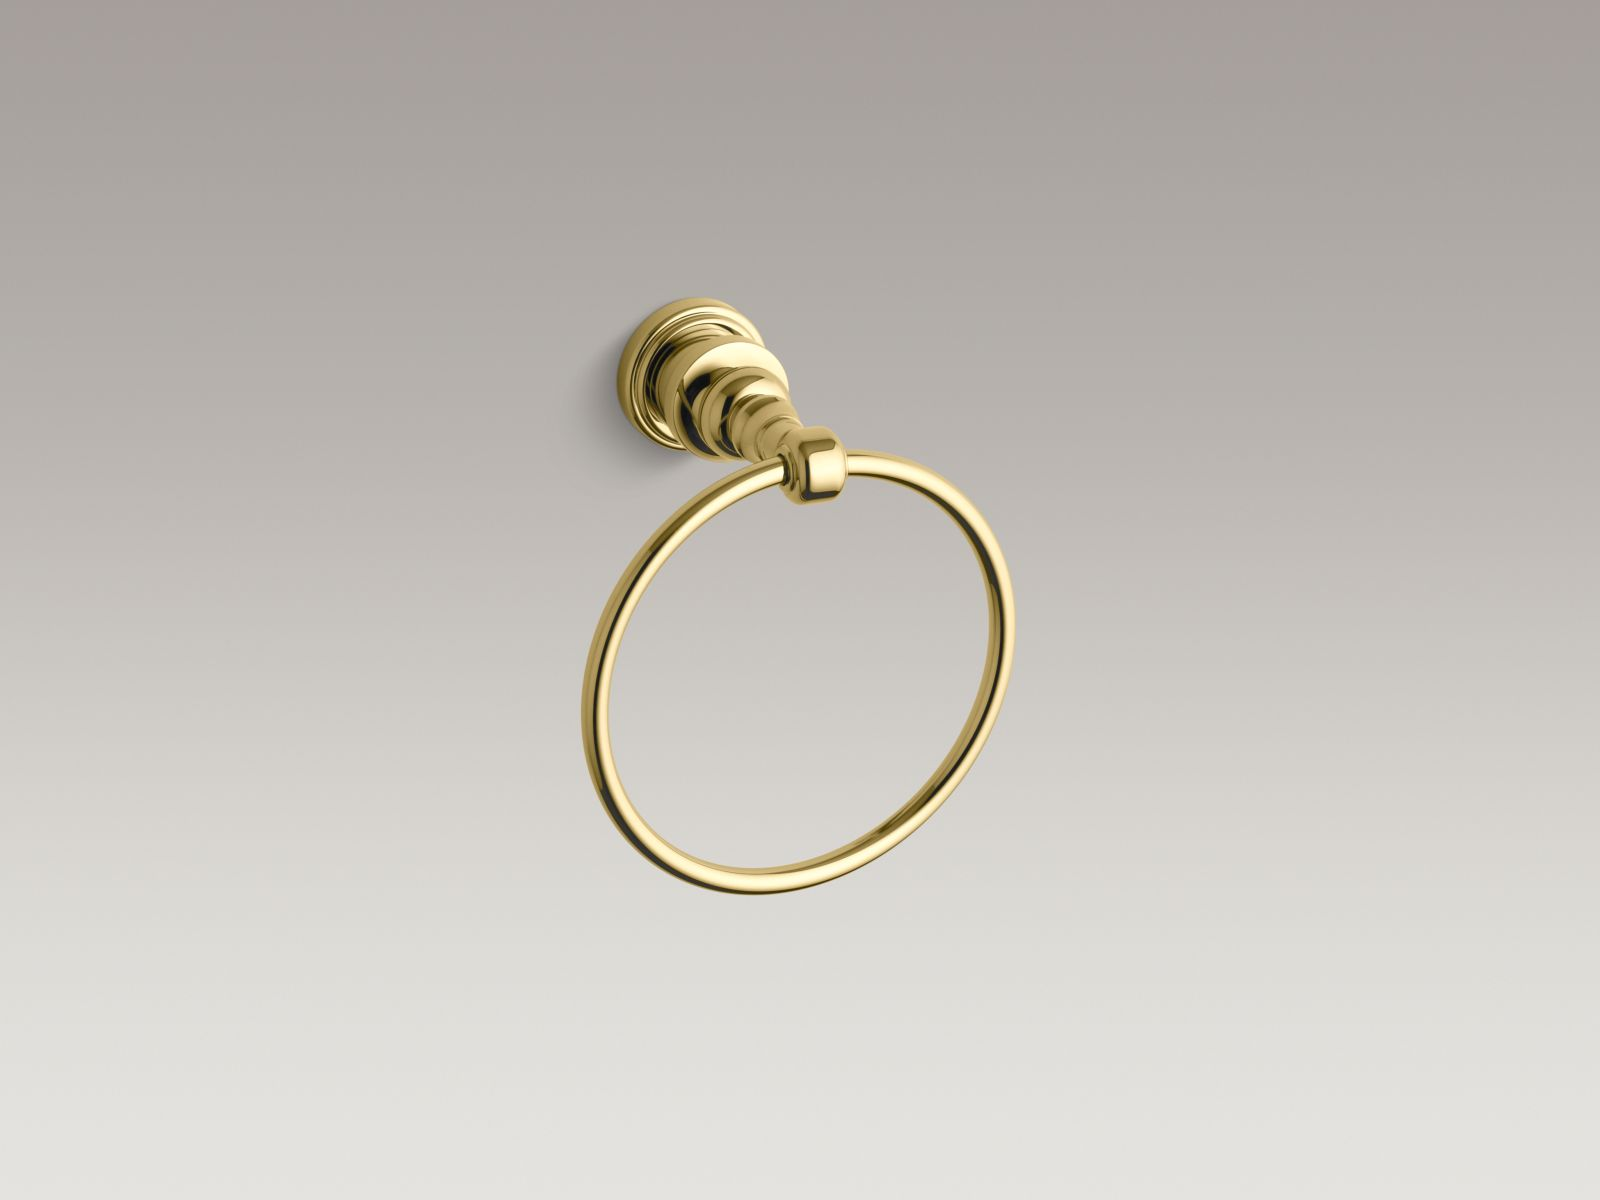 Kohler K-6817-PB IV Georges Brass Towel Ring Vibrant Polished Brass